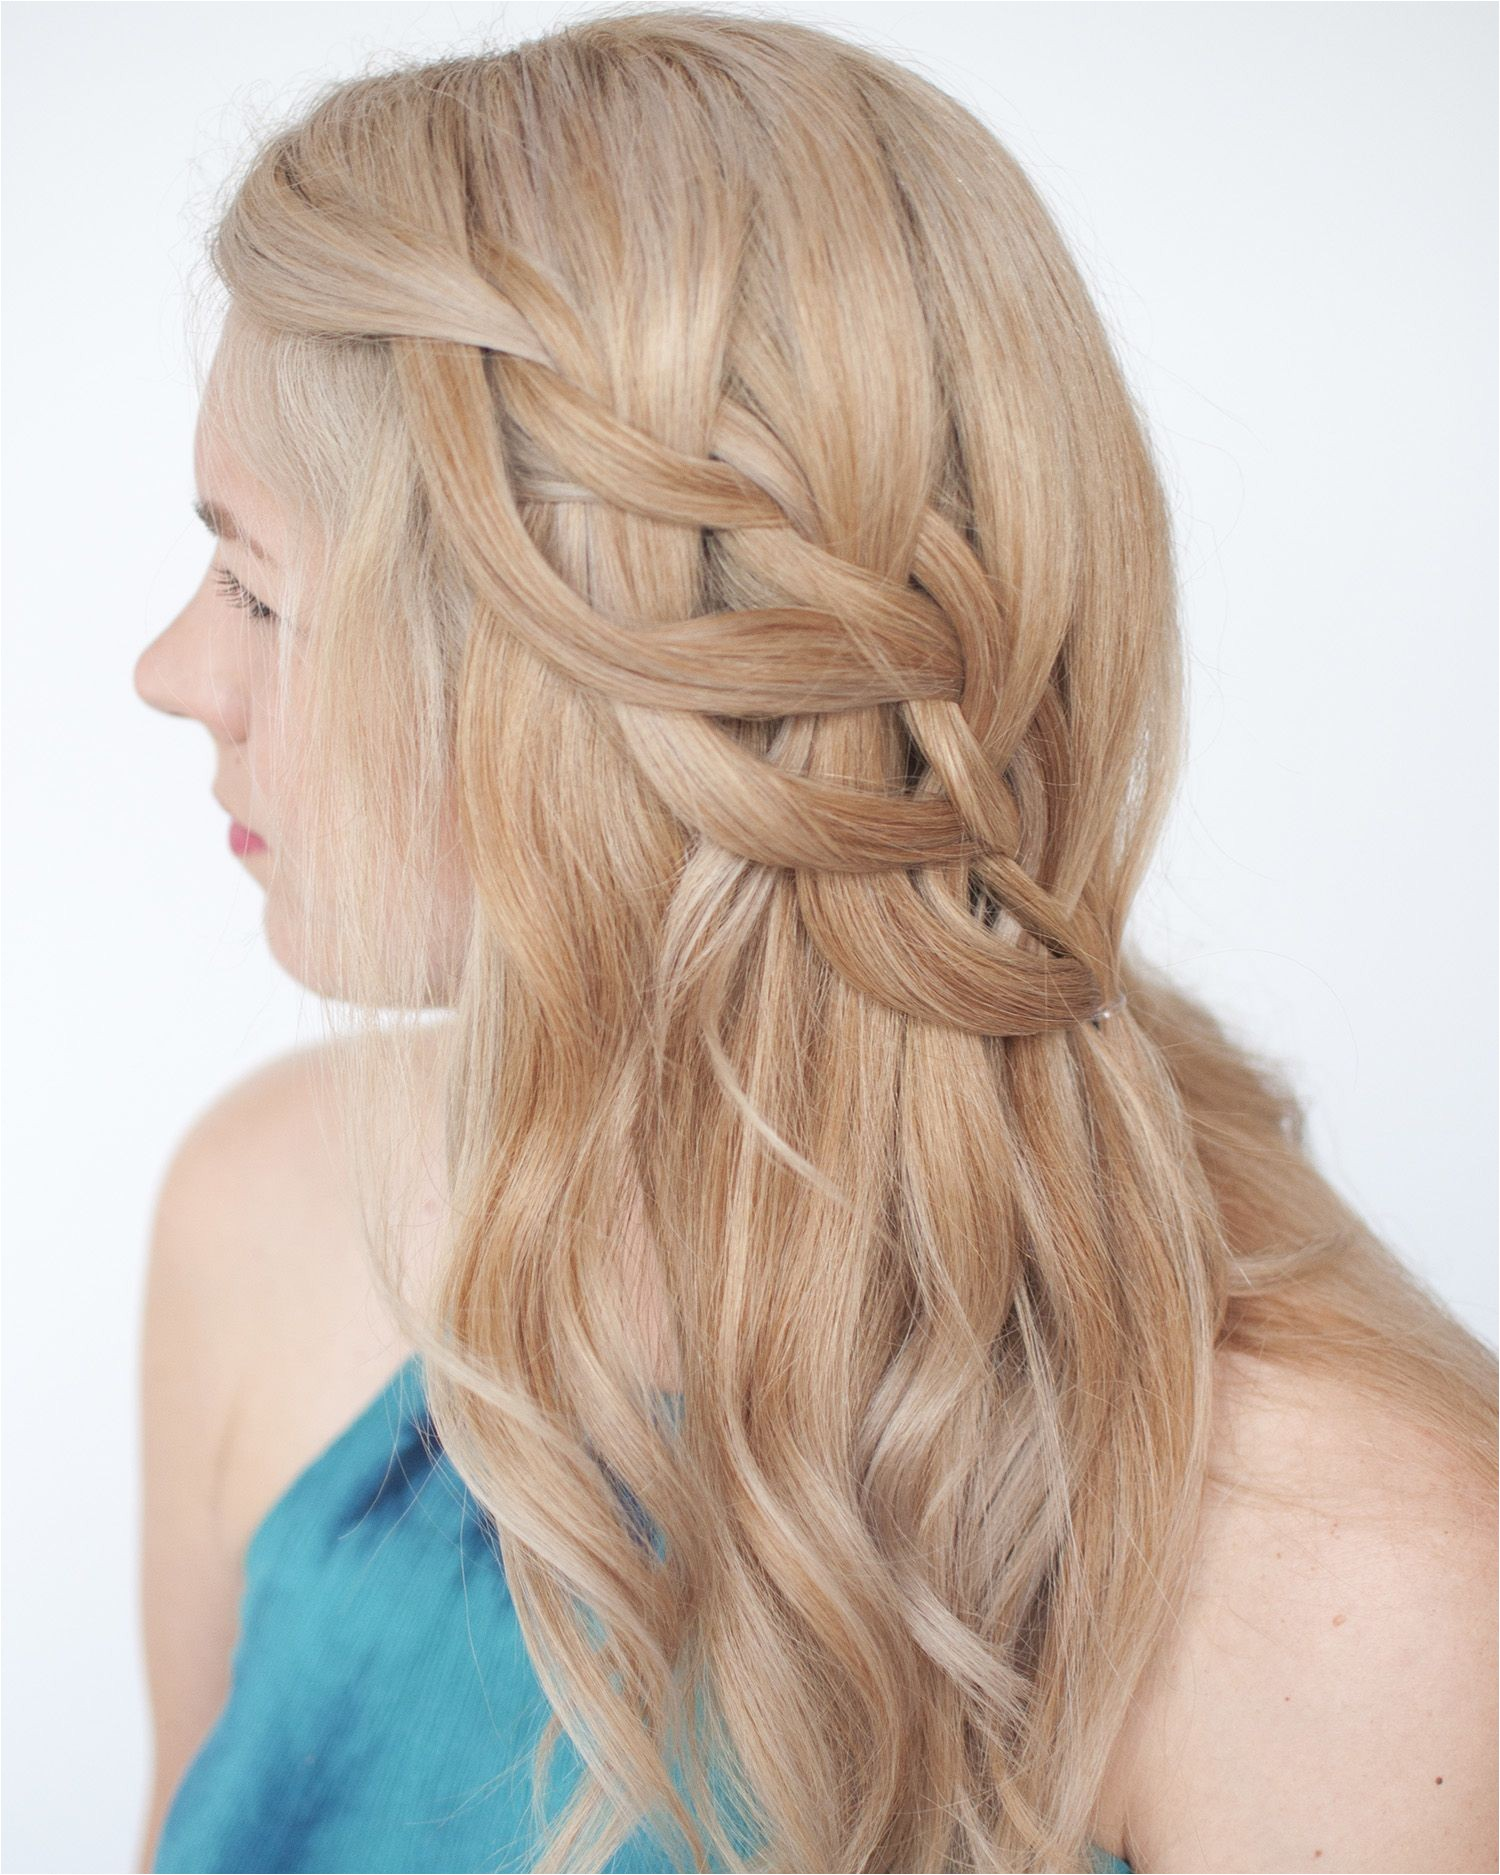 How to Make Waterfall Braid Hairstyle today S Hair Inspo This Loop Waterfall Braid Find the Tutorial On